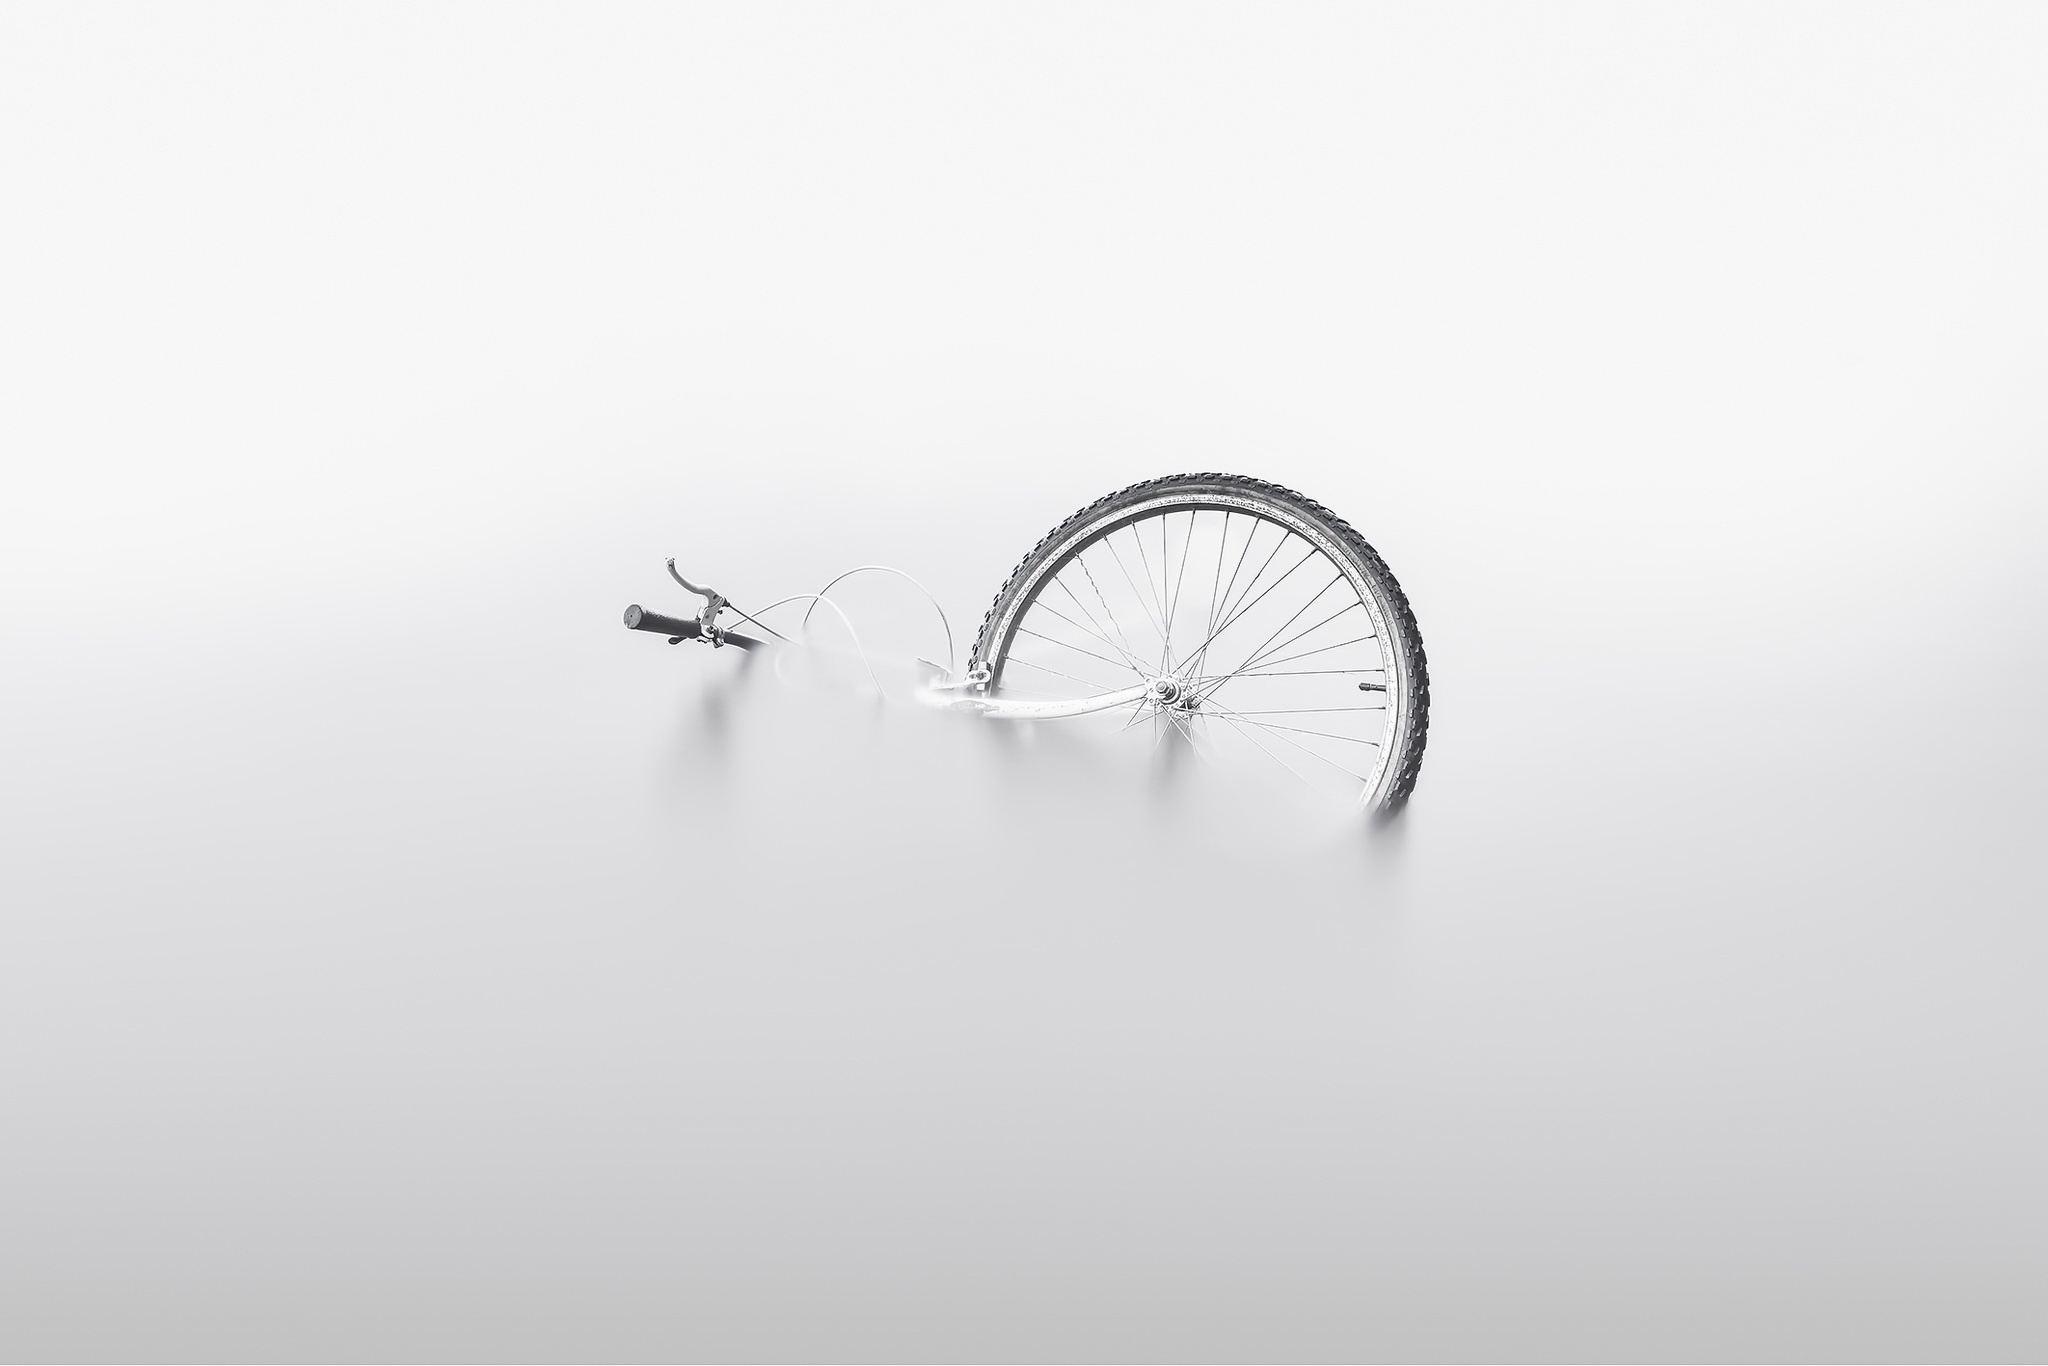 Sports Bicycle 2048x1366